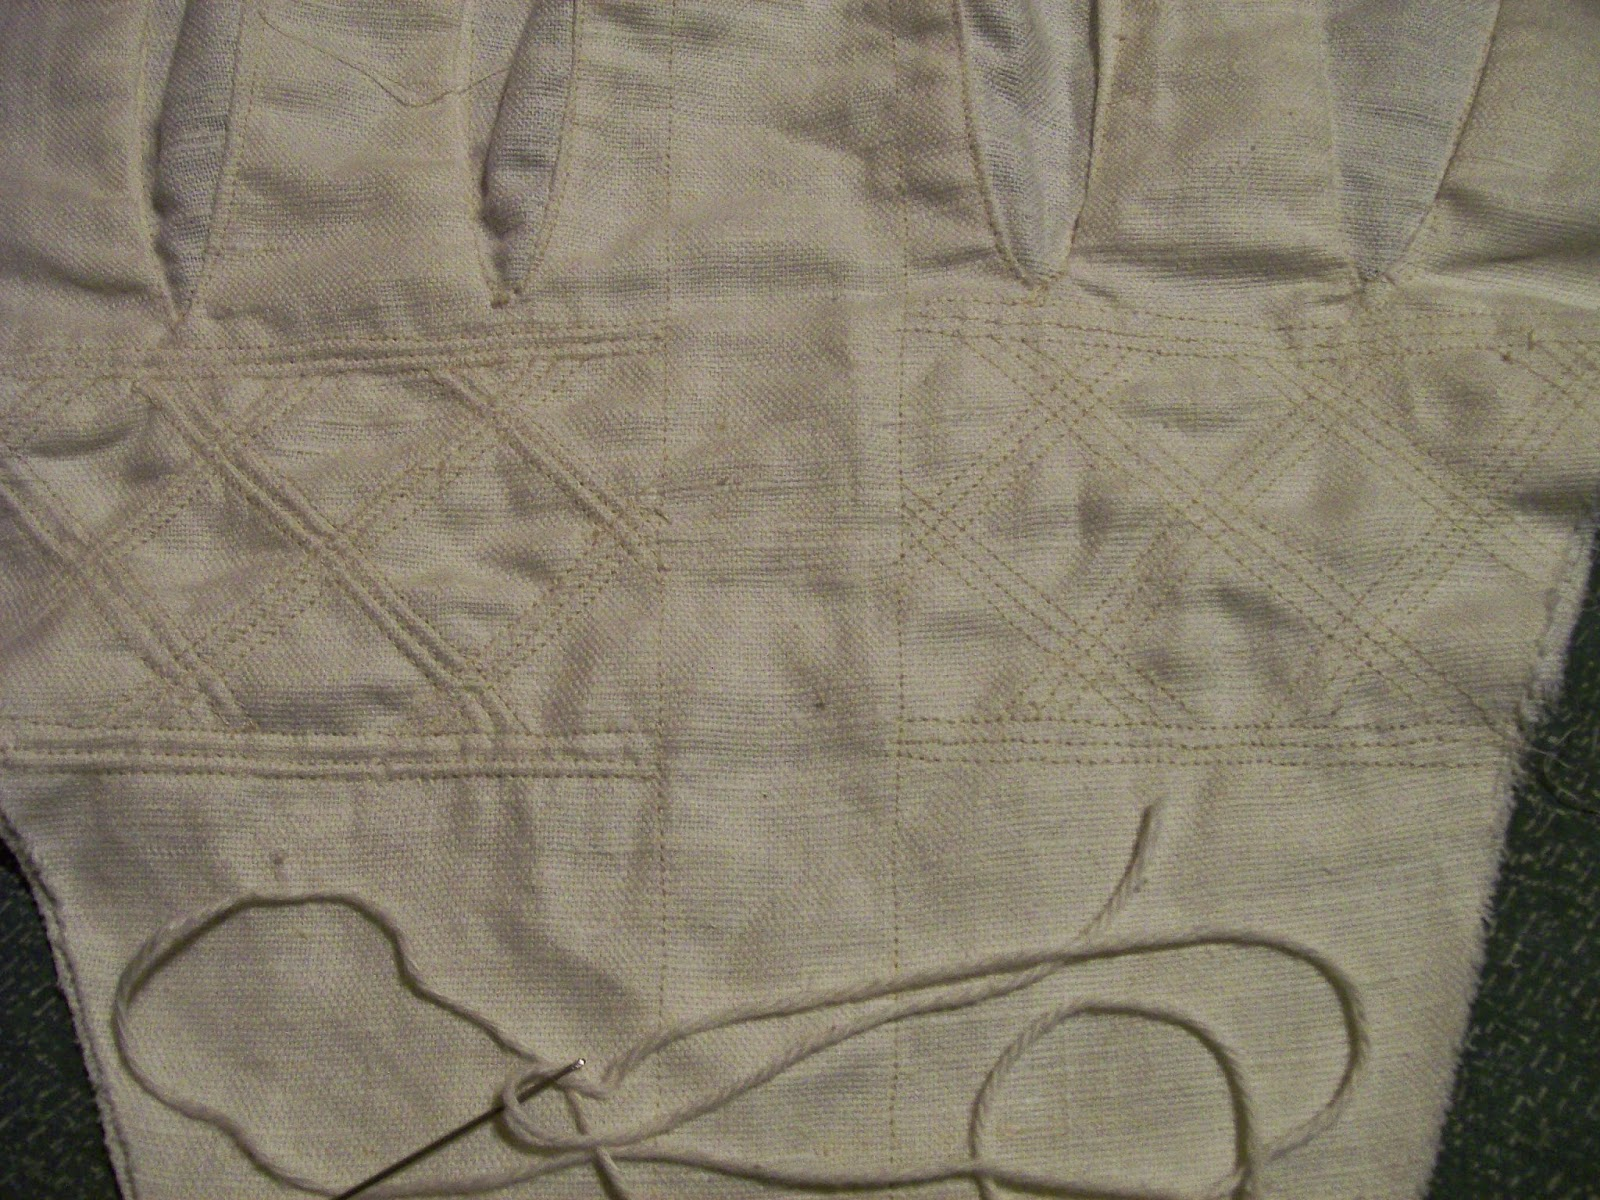 Front panel of stays with one side quilted, and the other quilted and corded.